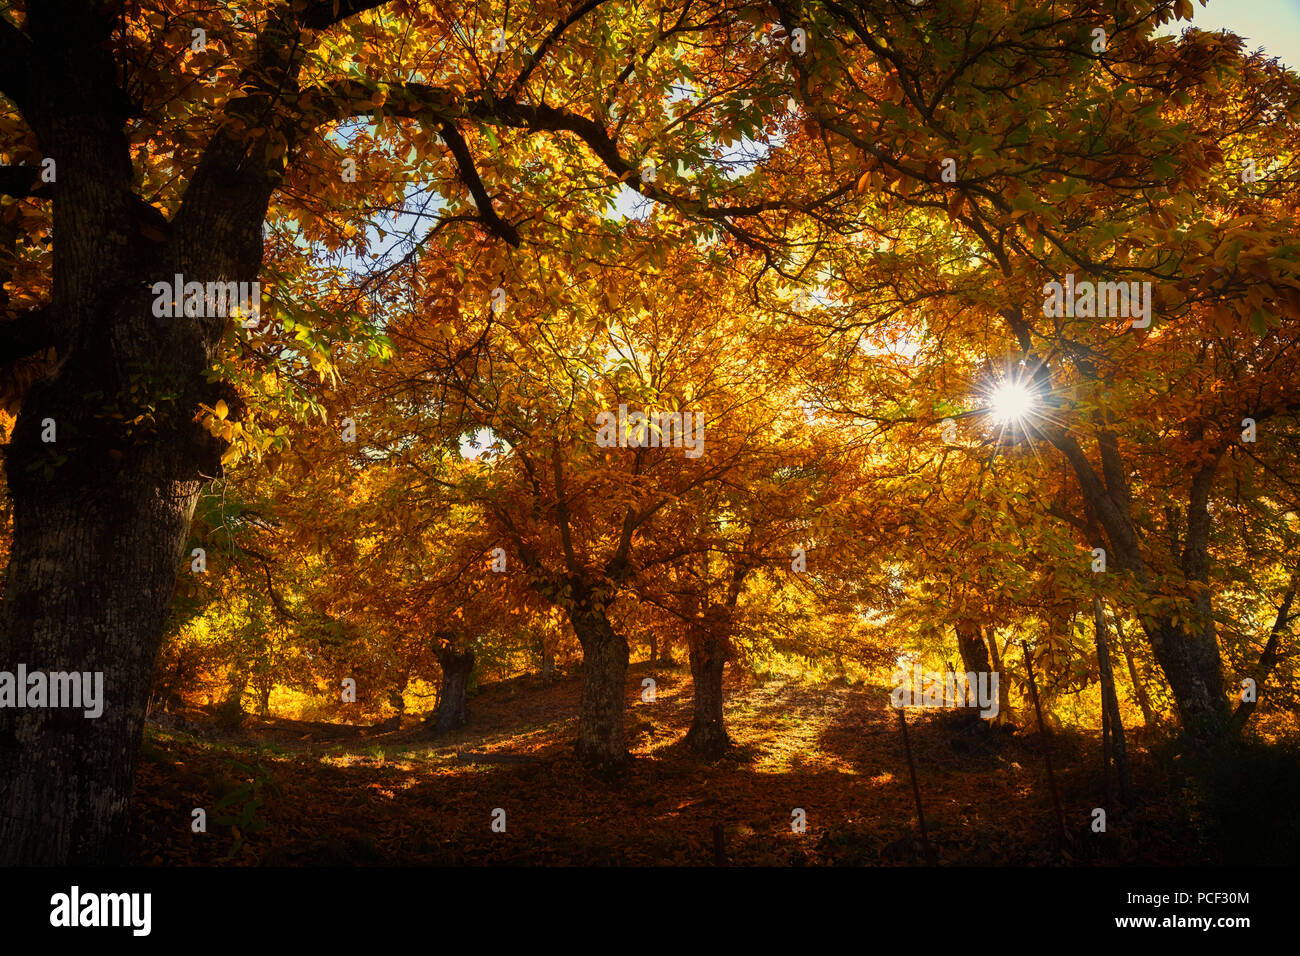 Malaga Province, Spain.  Autumn in the chestnut forests of the Valle del Genal in the Serranía de Ronda. - Stock Image